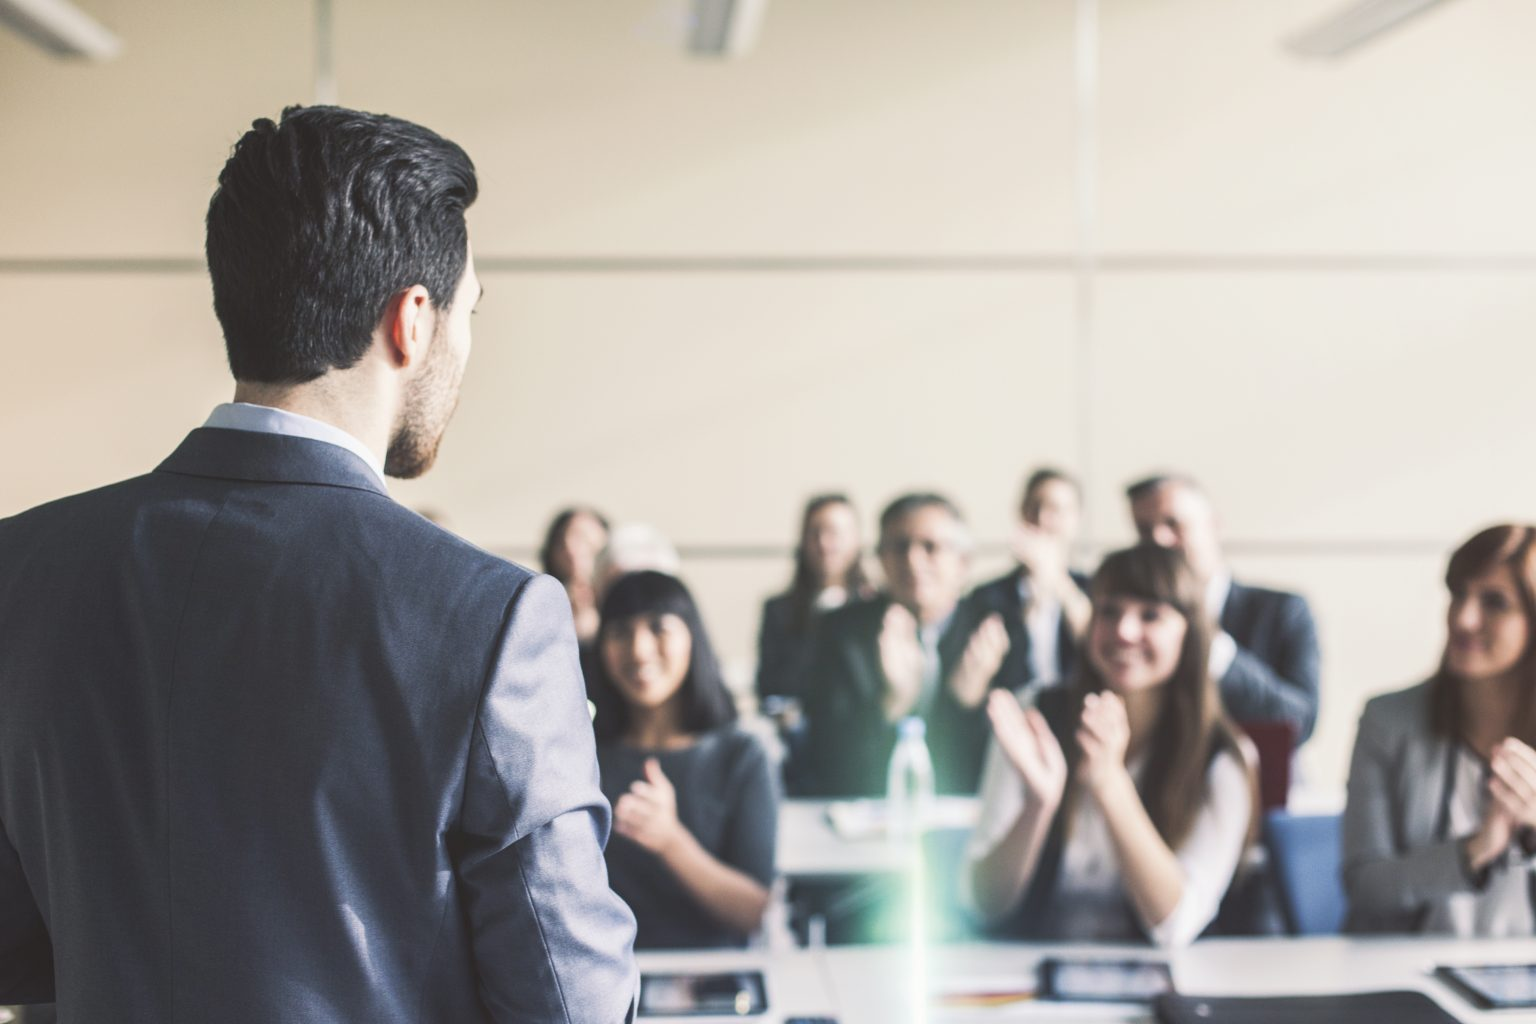 5 ways to build rapport with your audience